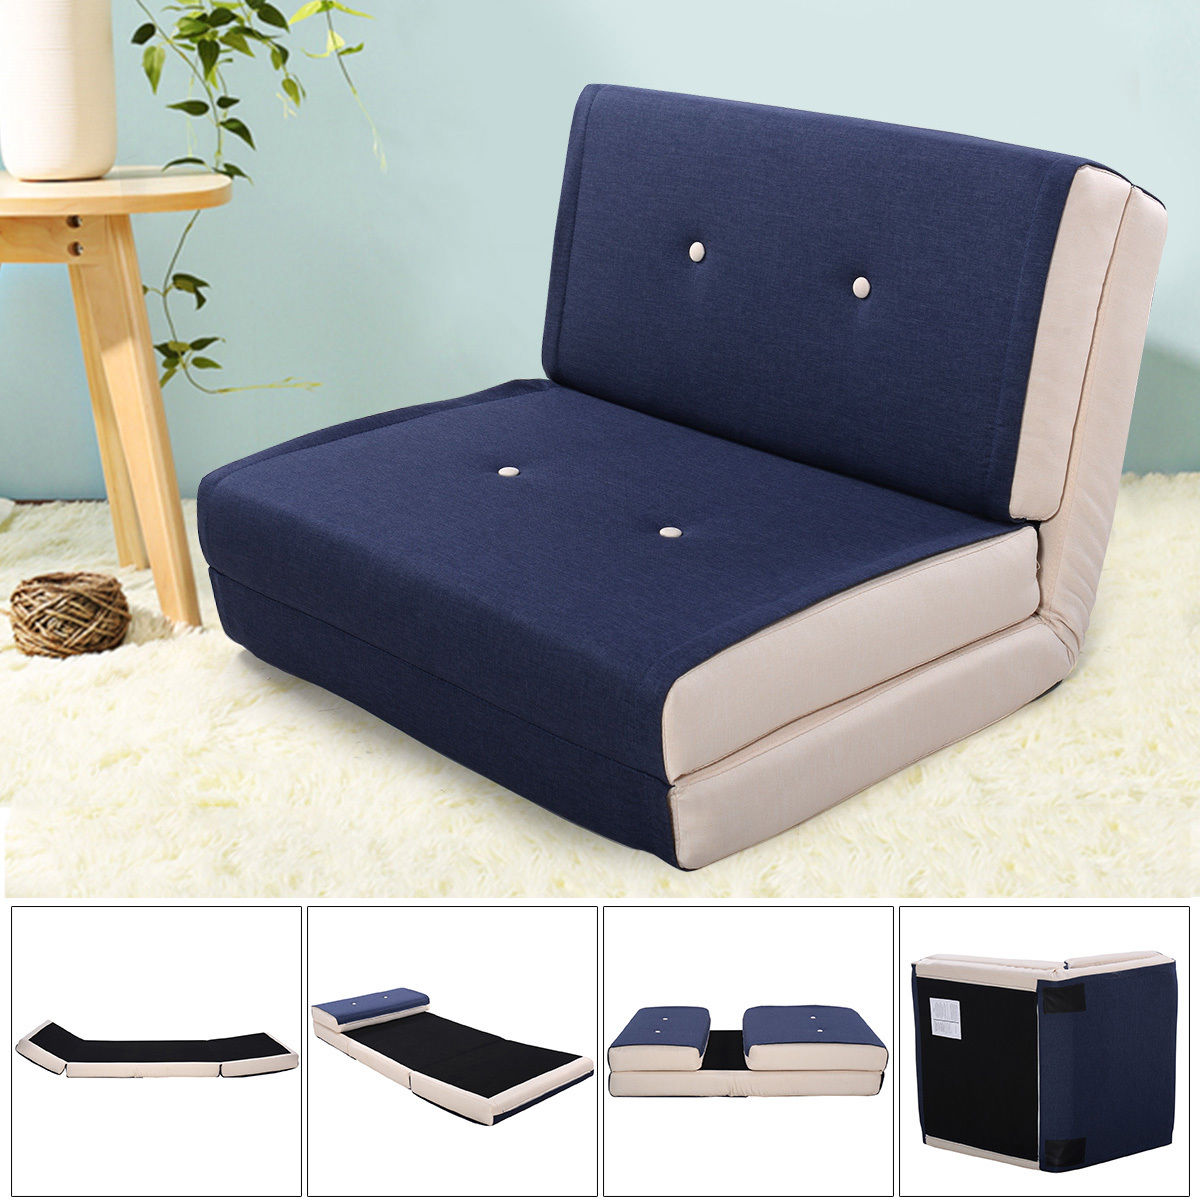 Phenomenal Giantex Fold Down Chair Flip Out Lounger Convertible Sleeper Alphanode Cool Chair Designs And Ideas Alphanodeonline